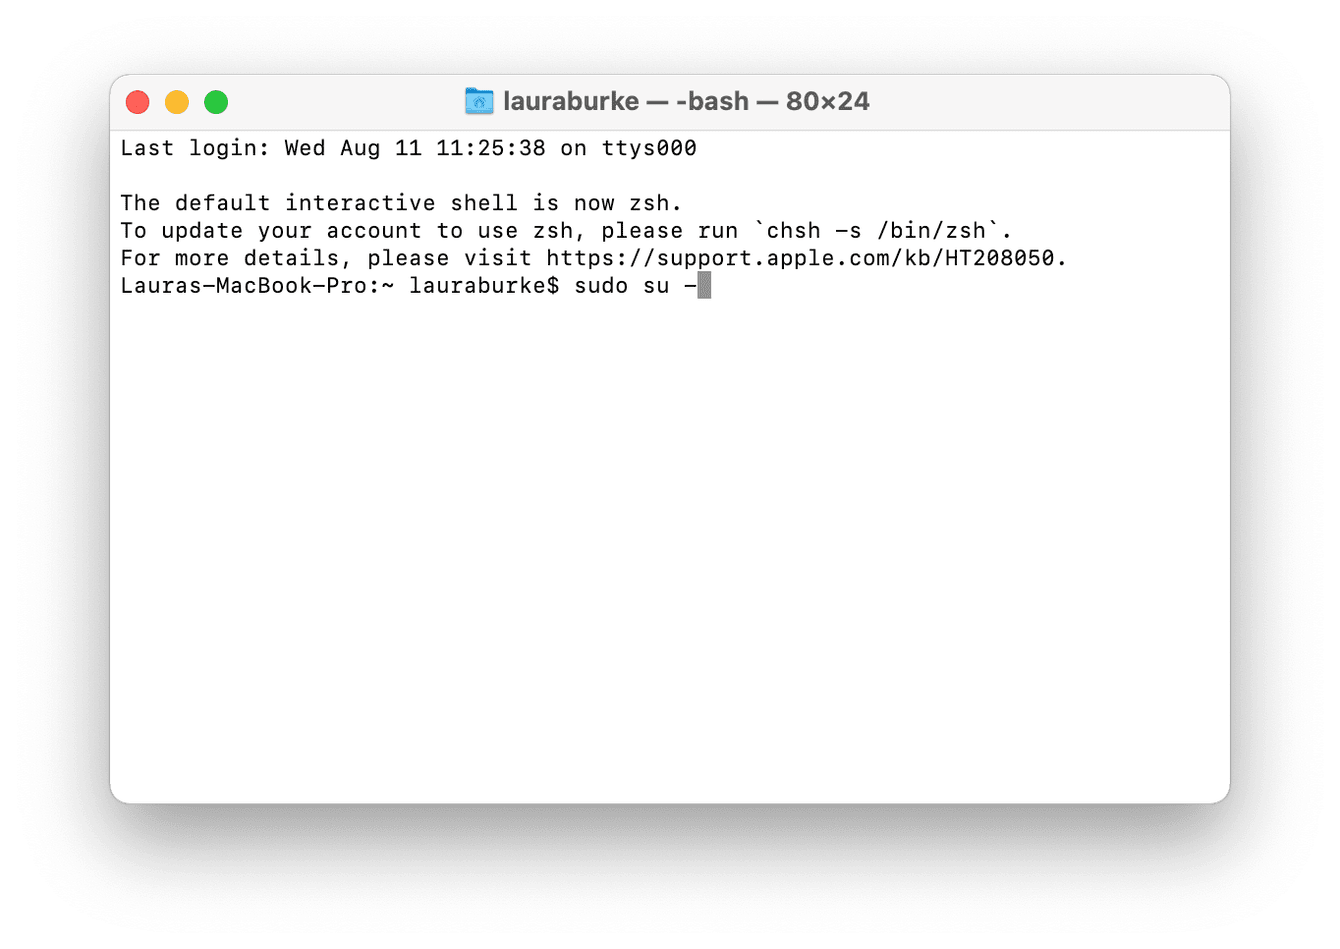 How to find a file in Terminal